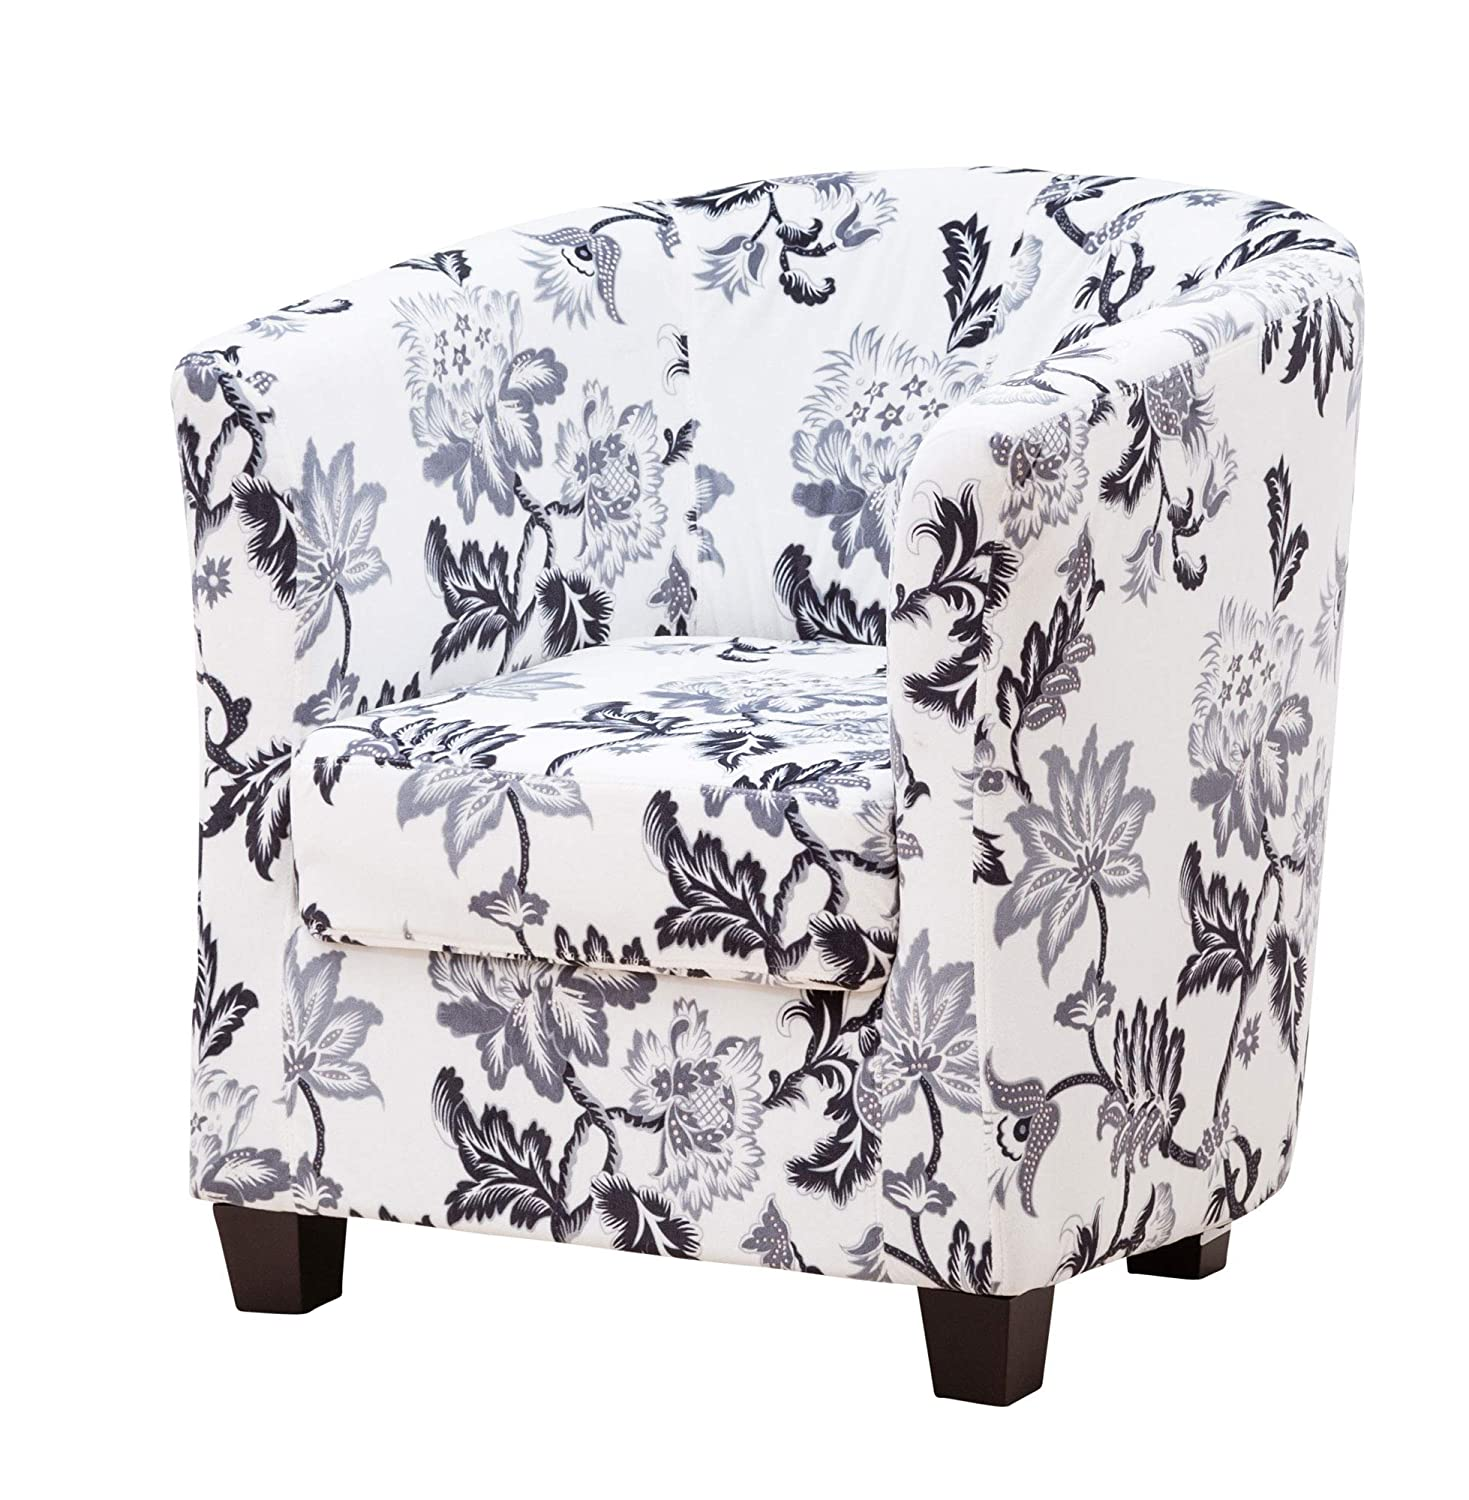 Sofa Collection Vallier Floral Tub Chair/Armchair Seating, Fabric, White, 72 x 71 x 78 cm 5060363585038